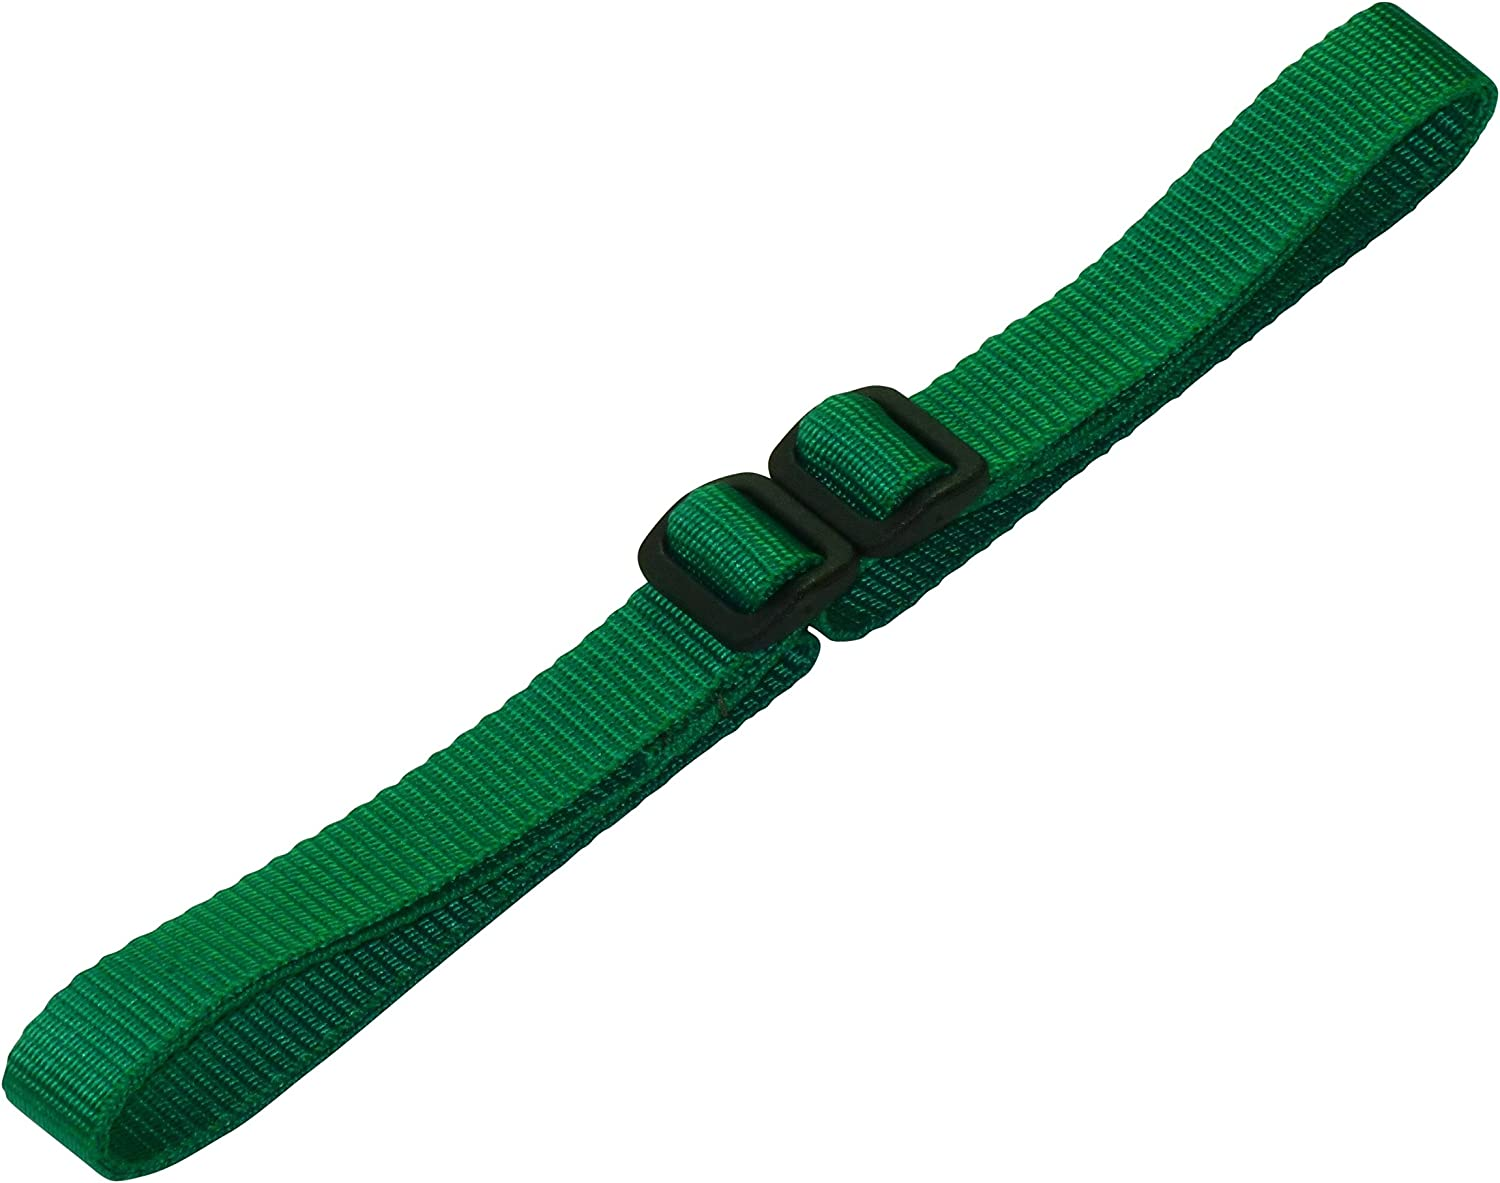 emerald green Benristraps Child Scooter Carry and Pull Strap in a